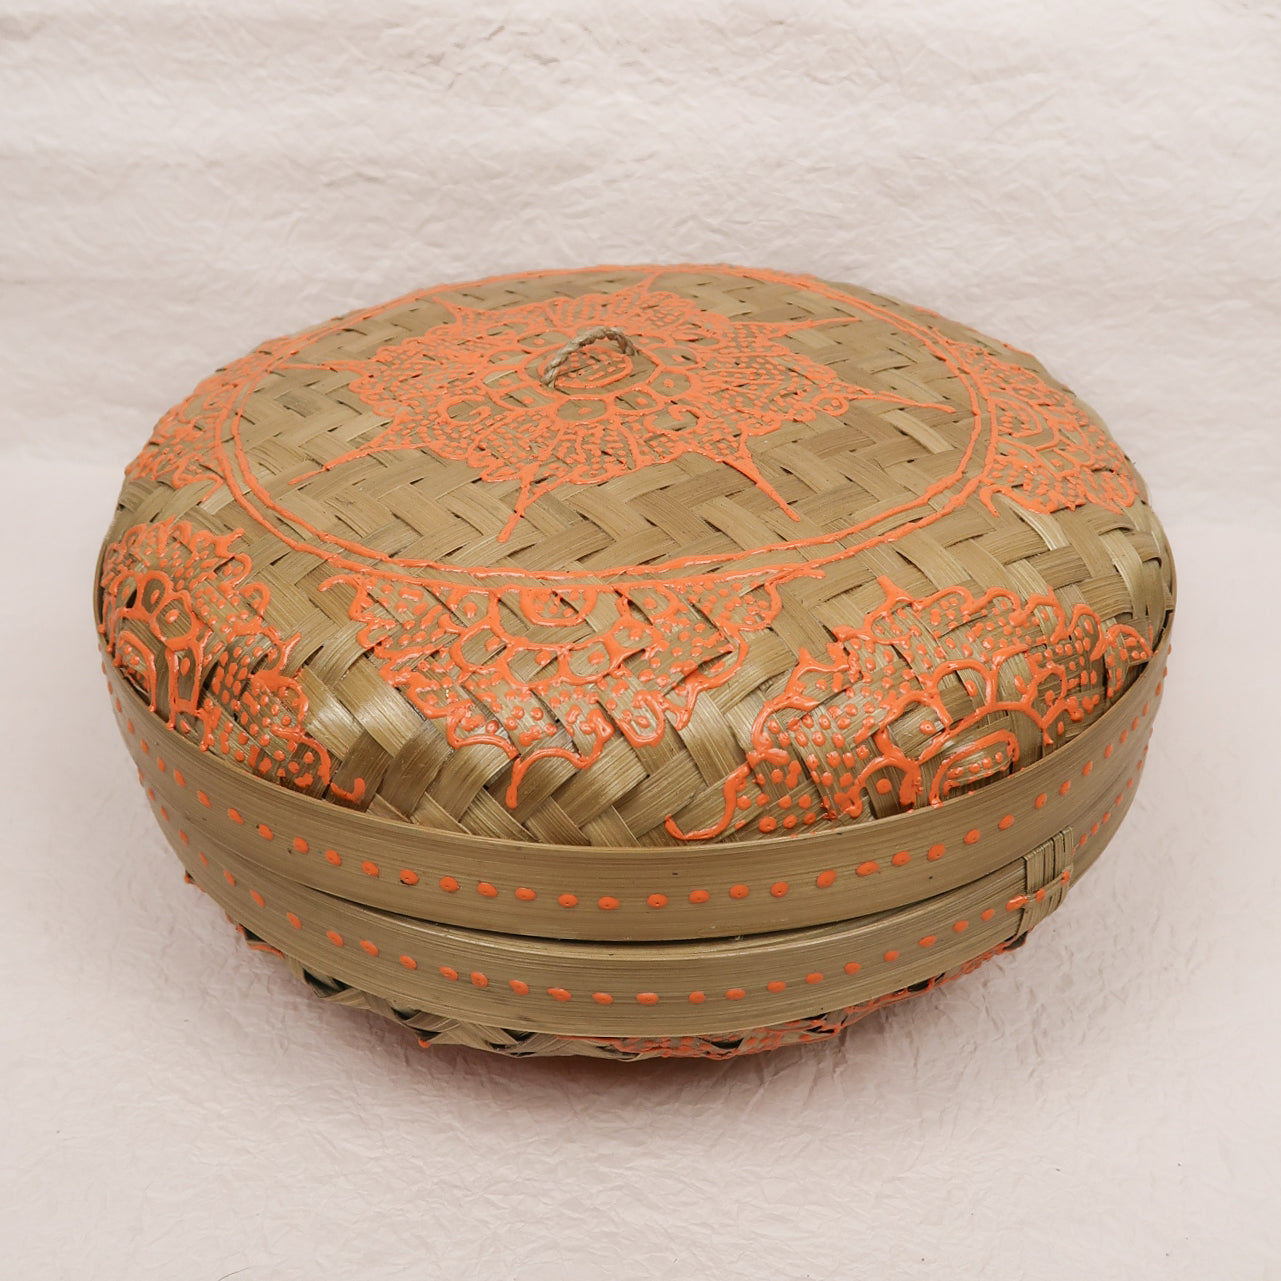 Bali boho chic woven round fat box painted orange small size